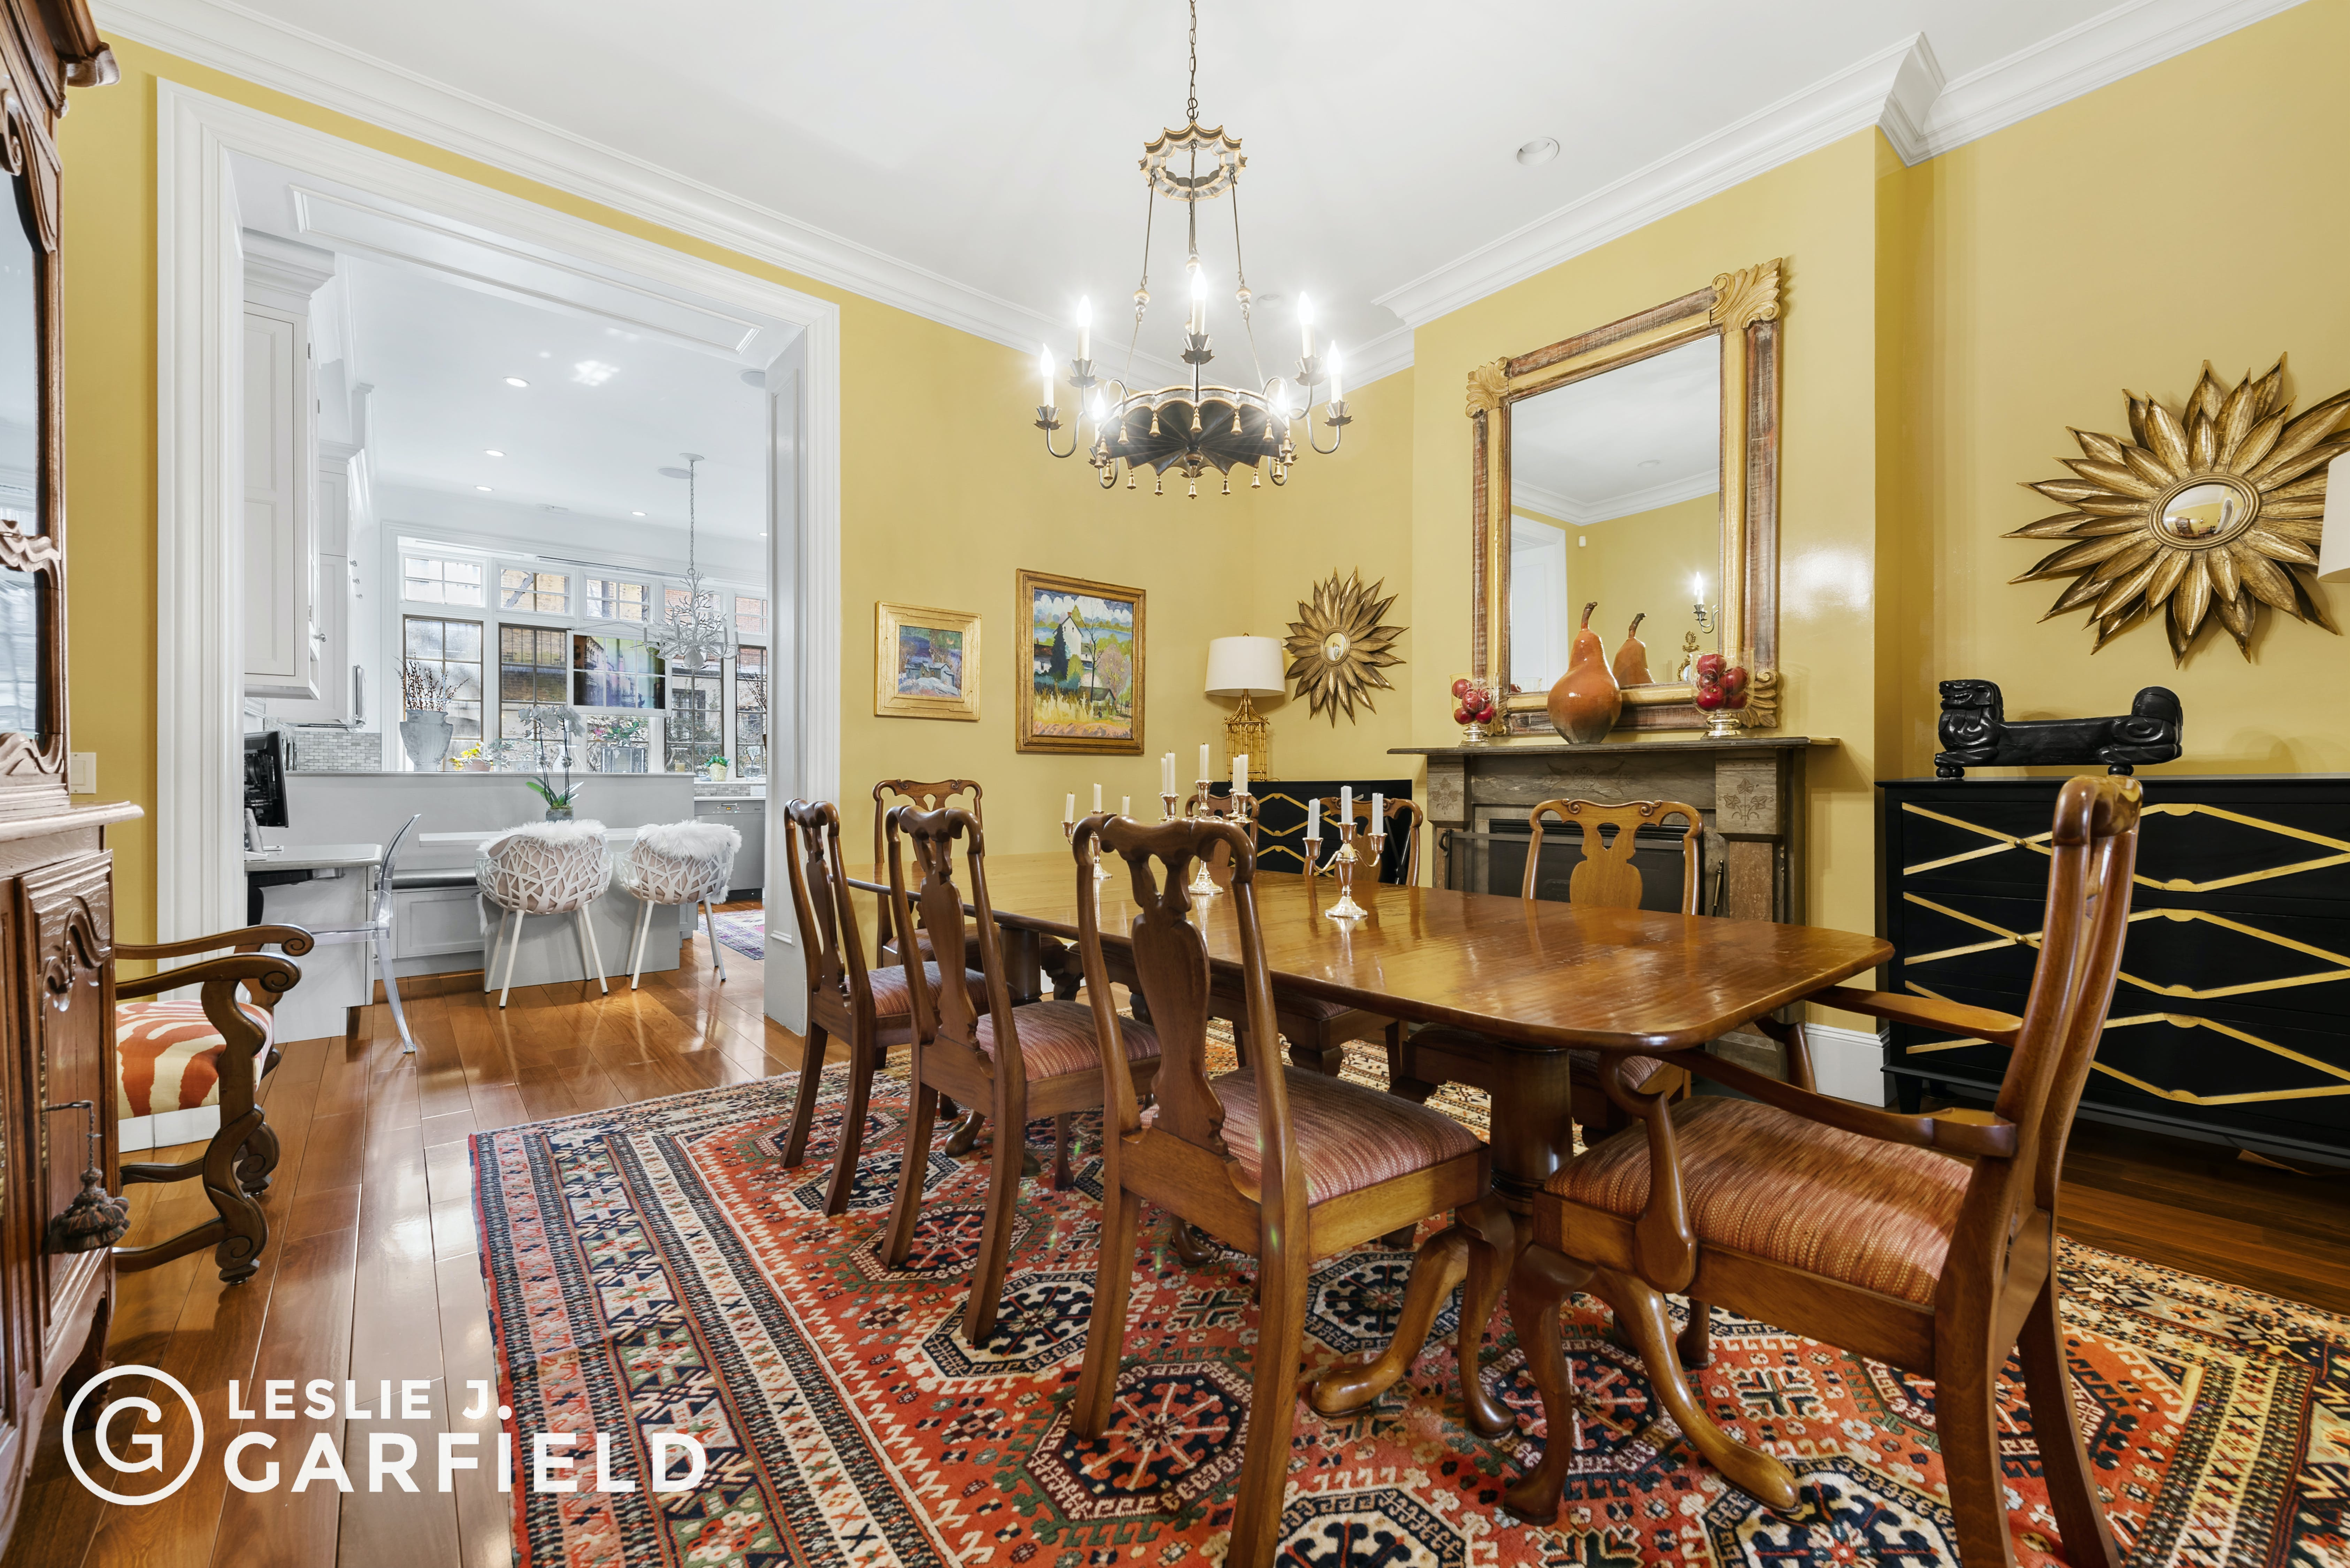 162 East 93rd Street - b038d574-d8ae-427c-9e0c-a8b0f7924bfd - New York City Townhouse Real Estate